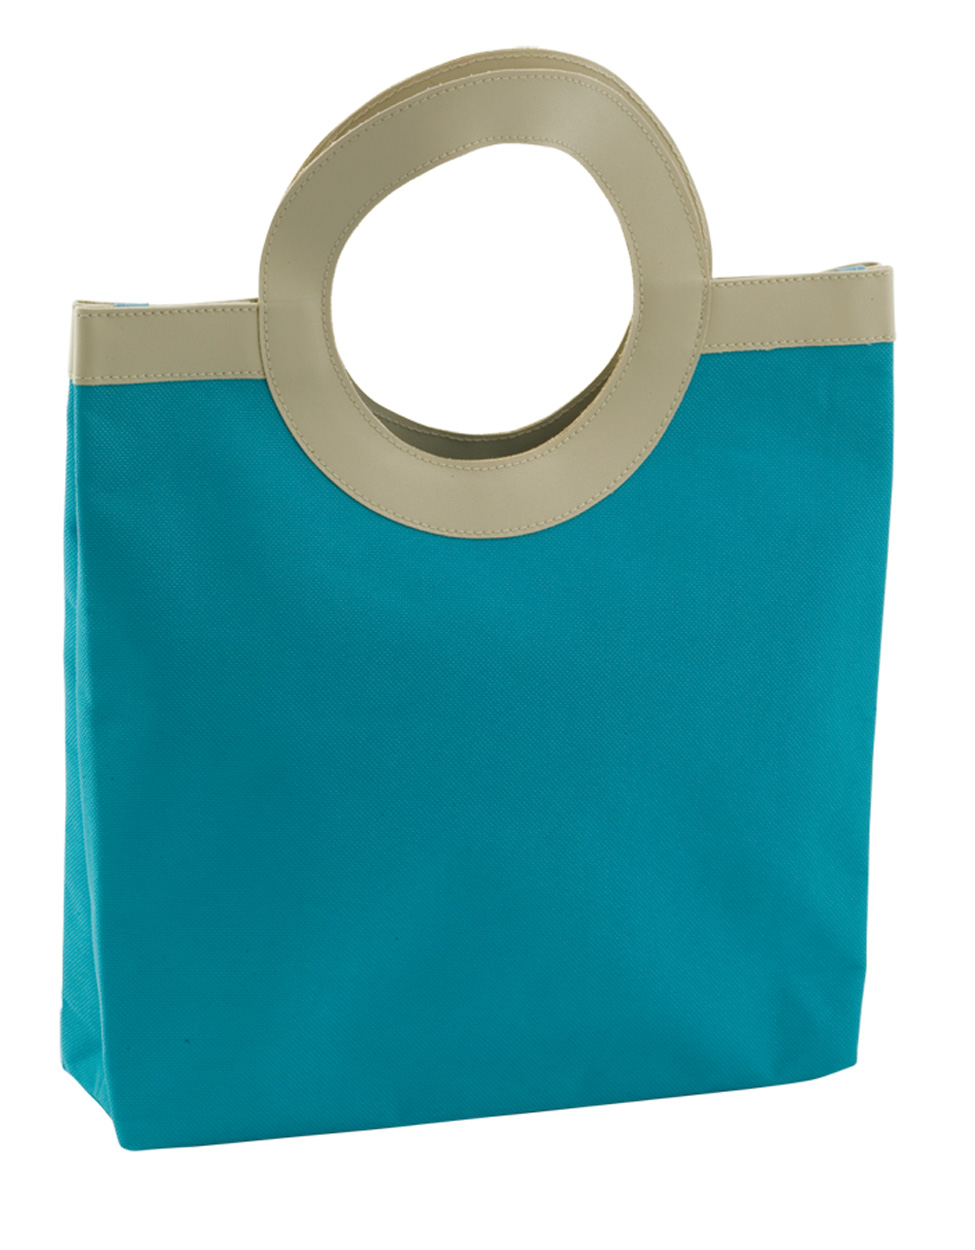 Coral shopping bag